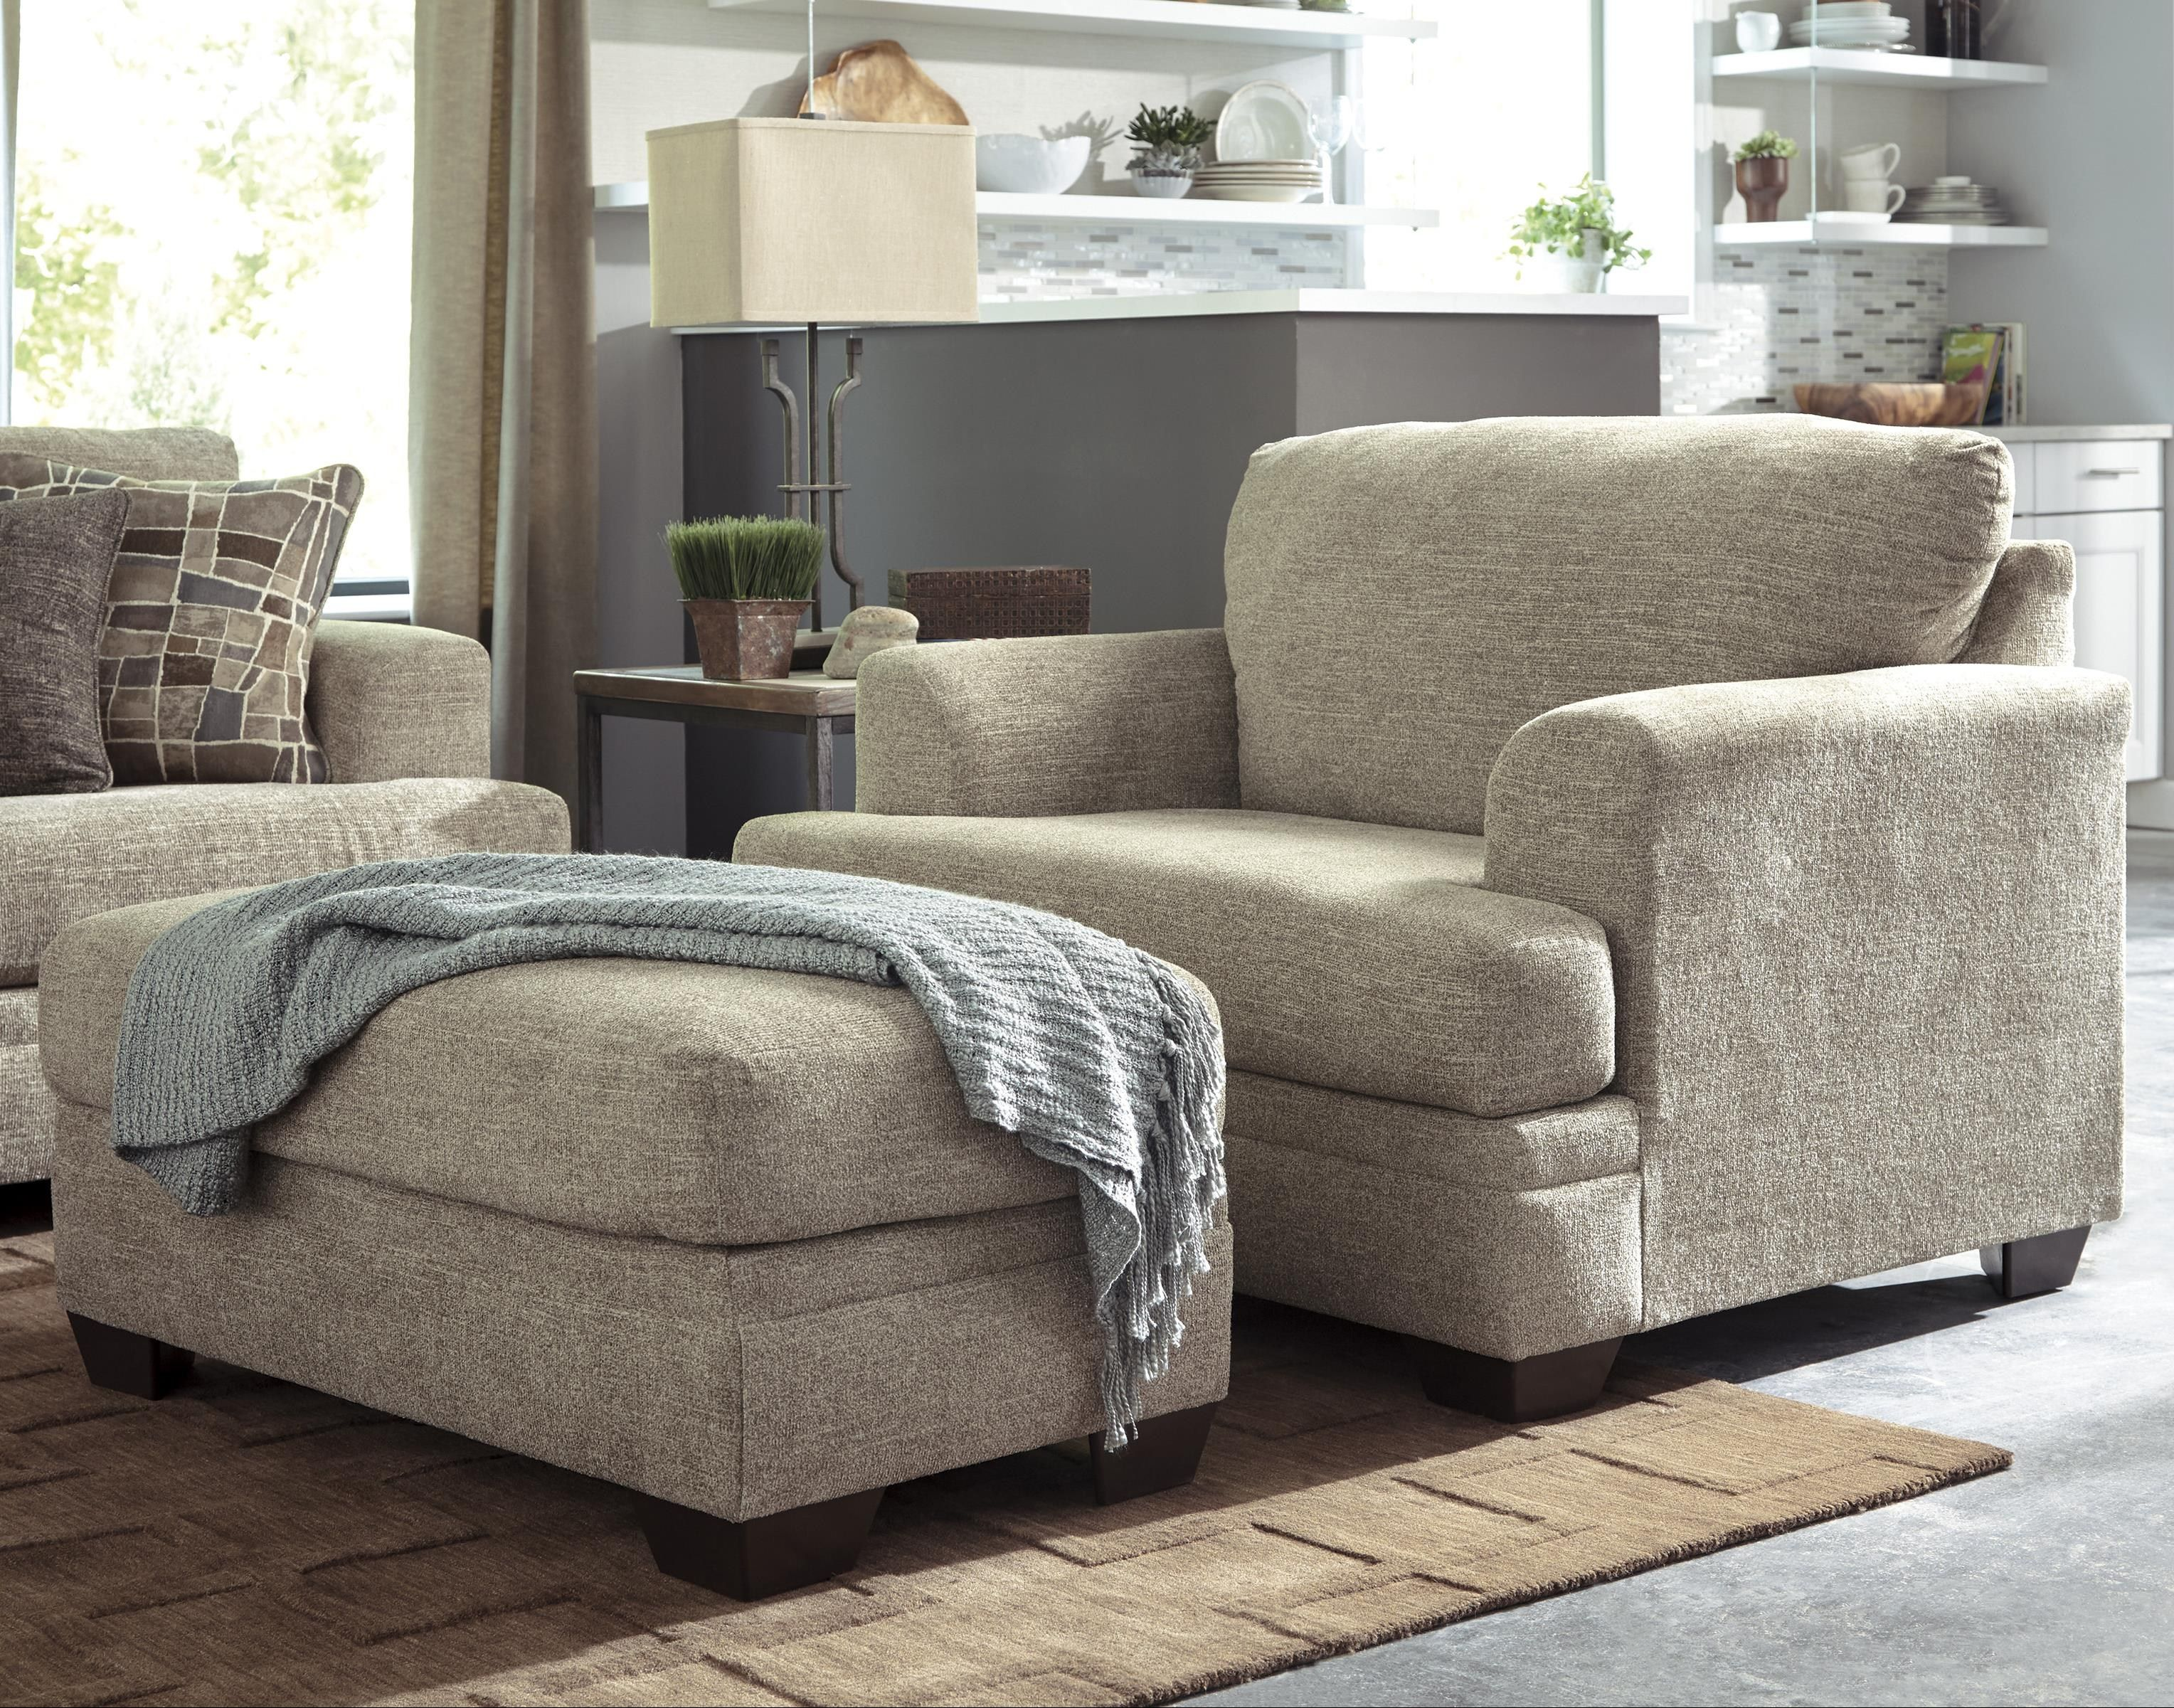 Buy Chair And A Half With Ottoman For Better Comfort At Home Oversized Chair And Ottoman Living Room Chairs Blue Chairs Living Room